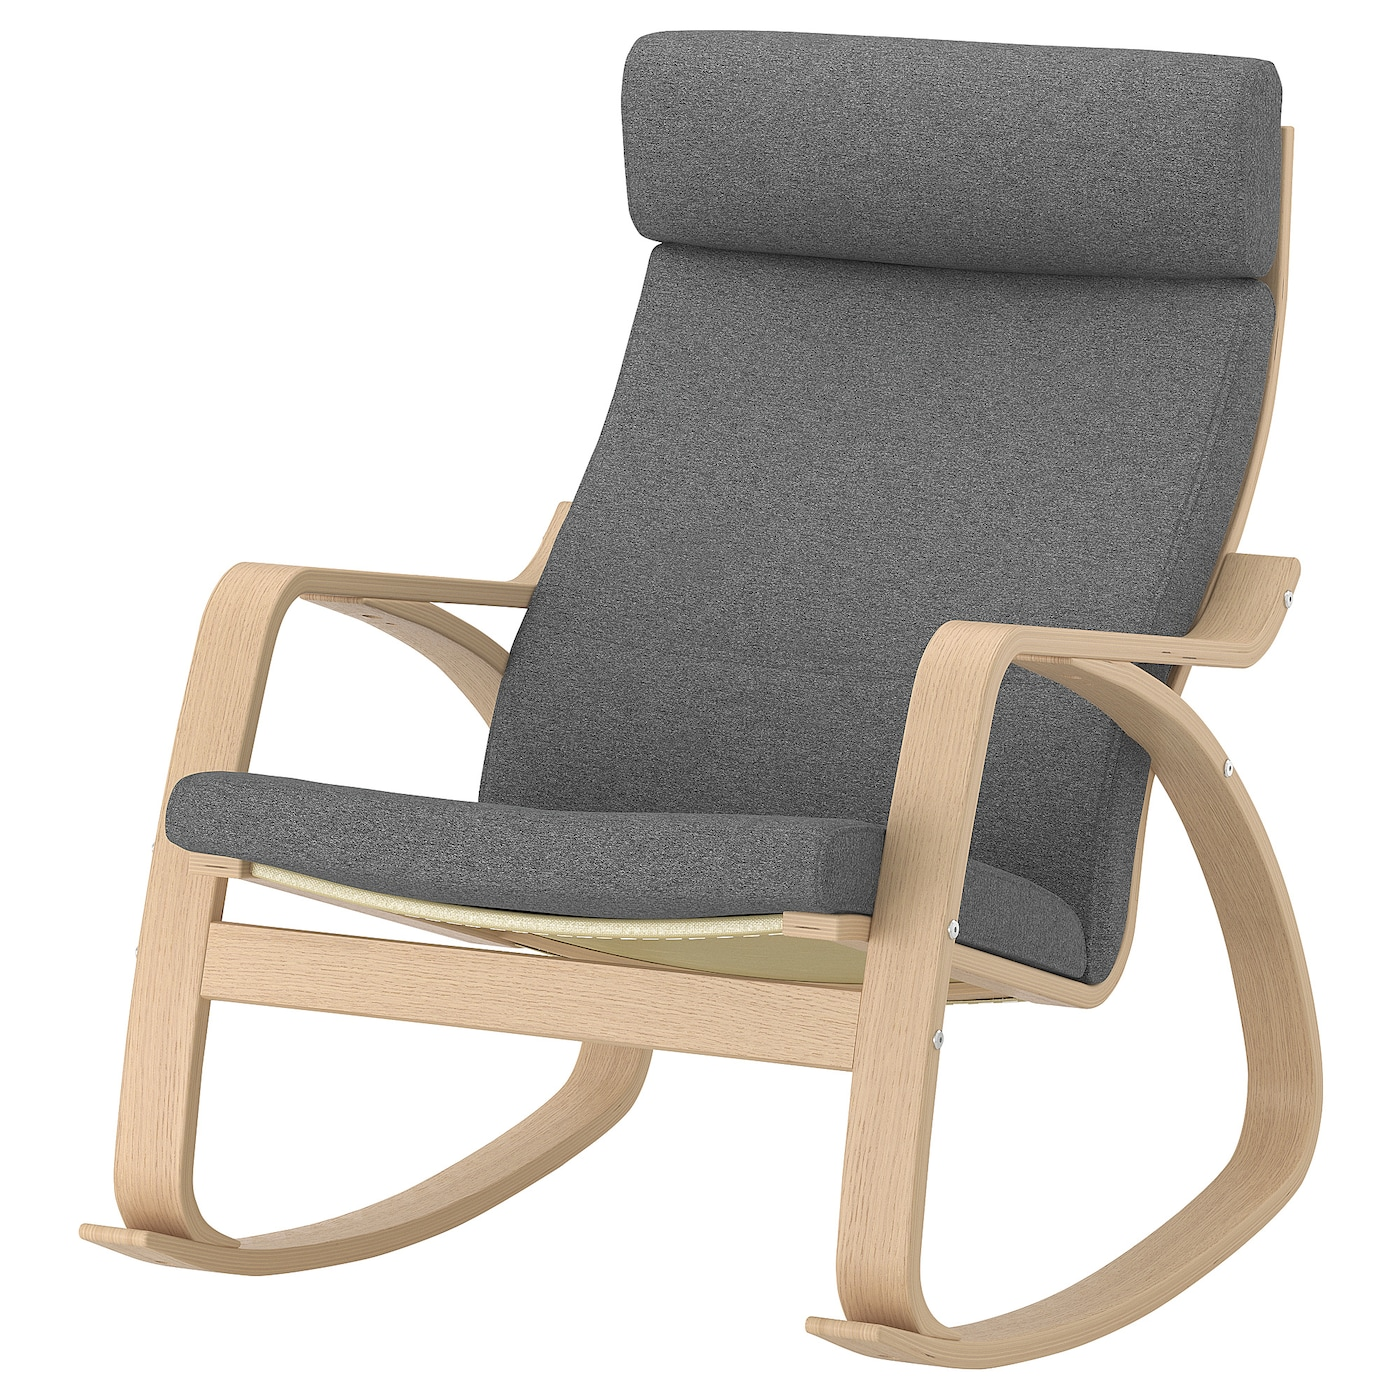 POÄNG Rocking chair white stained oak veneer, Lysed grey